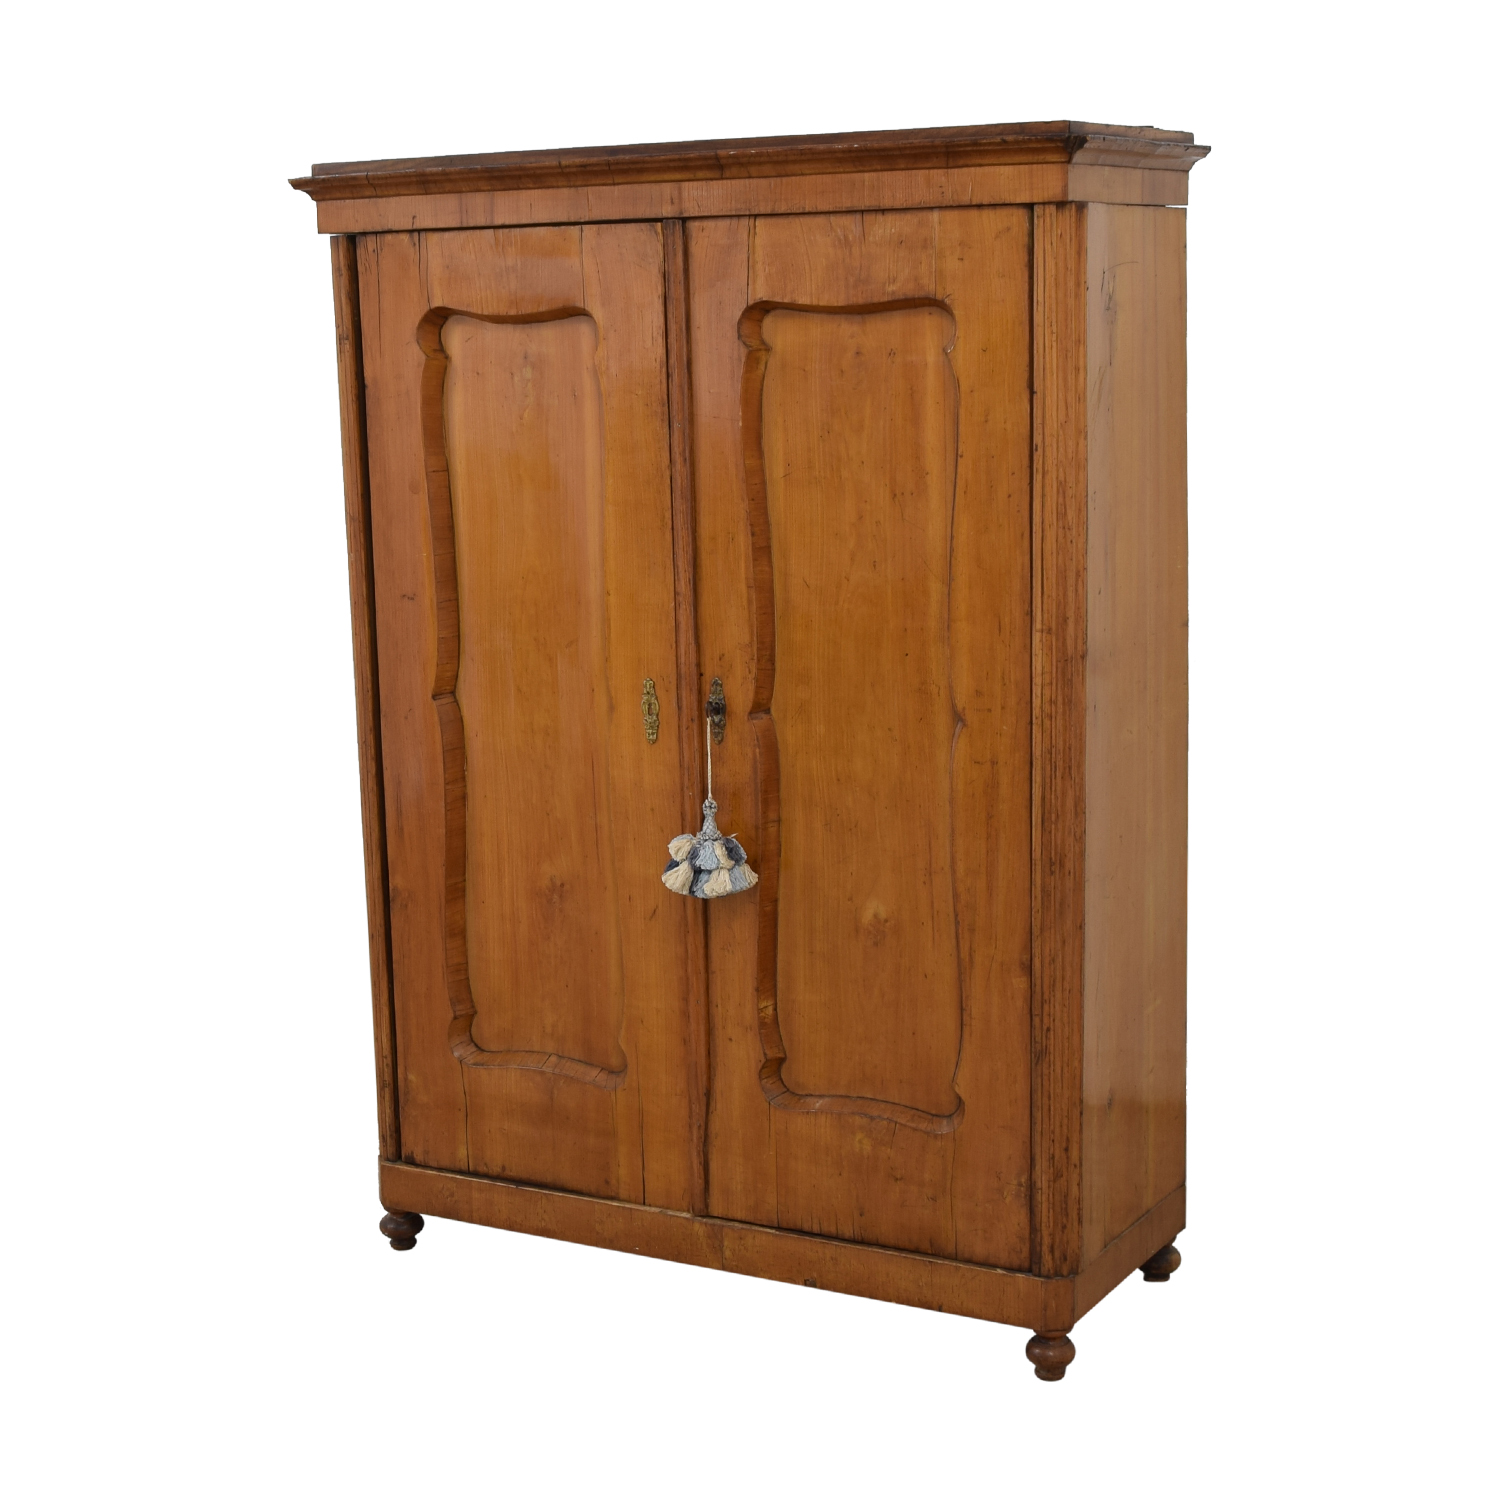 Wood Wardrobe Armoire with Shelves for sale